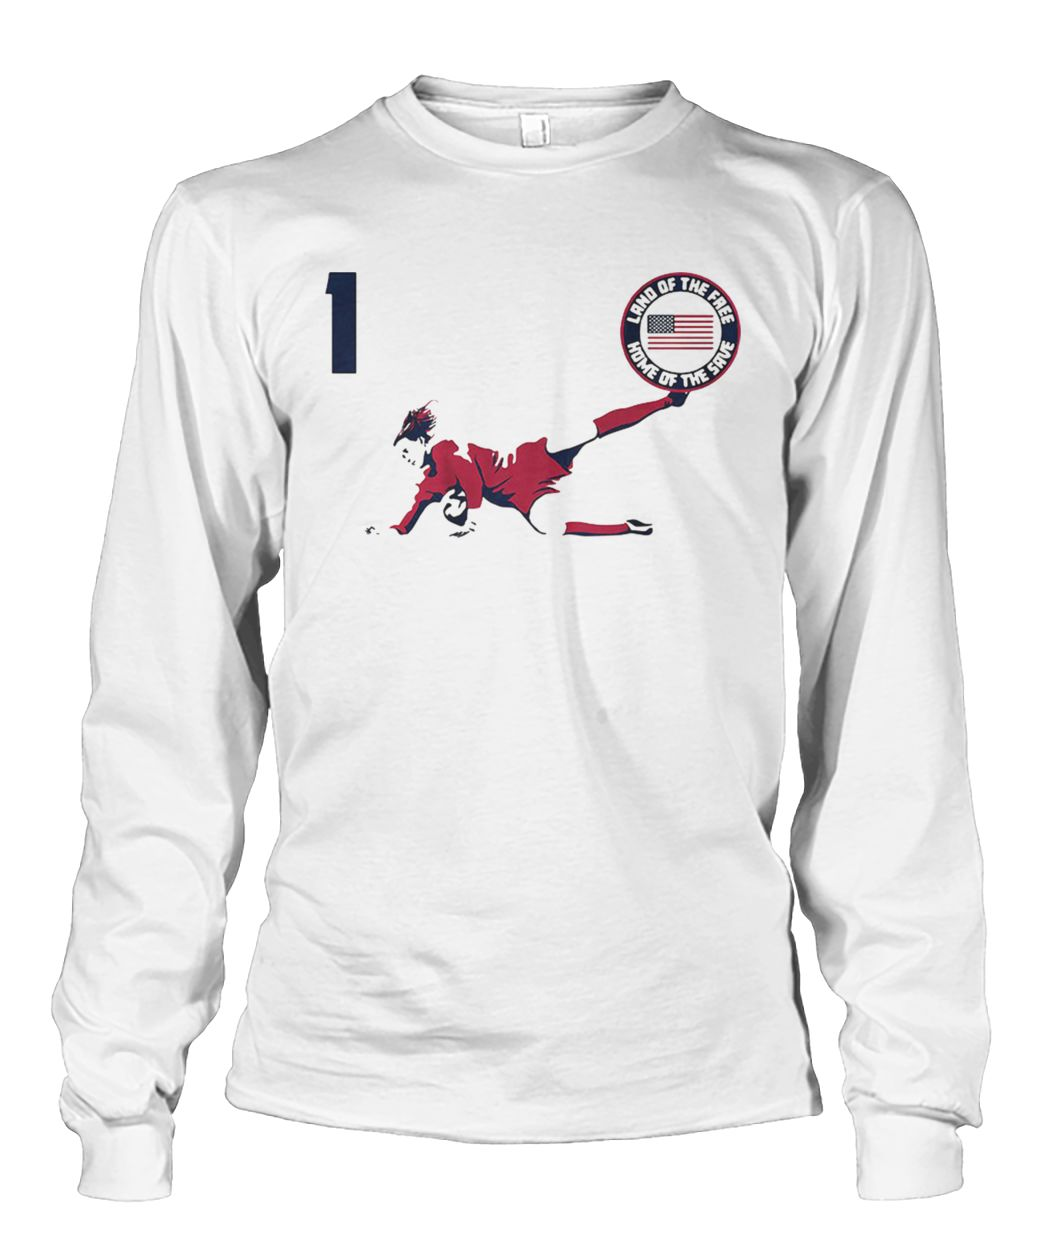 Alyssa Naeher land of the free home of the save unisex long sleeve